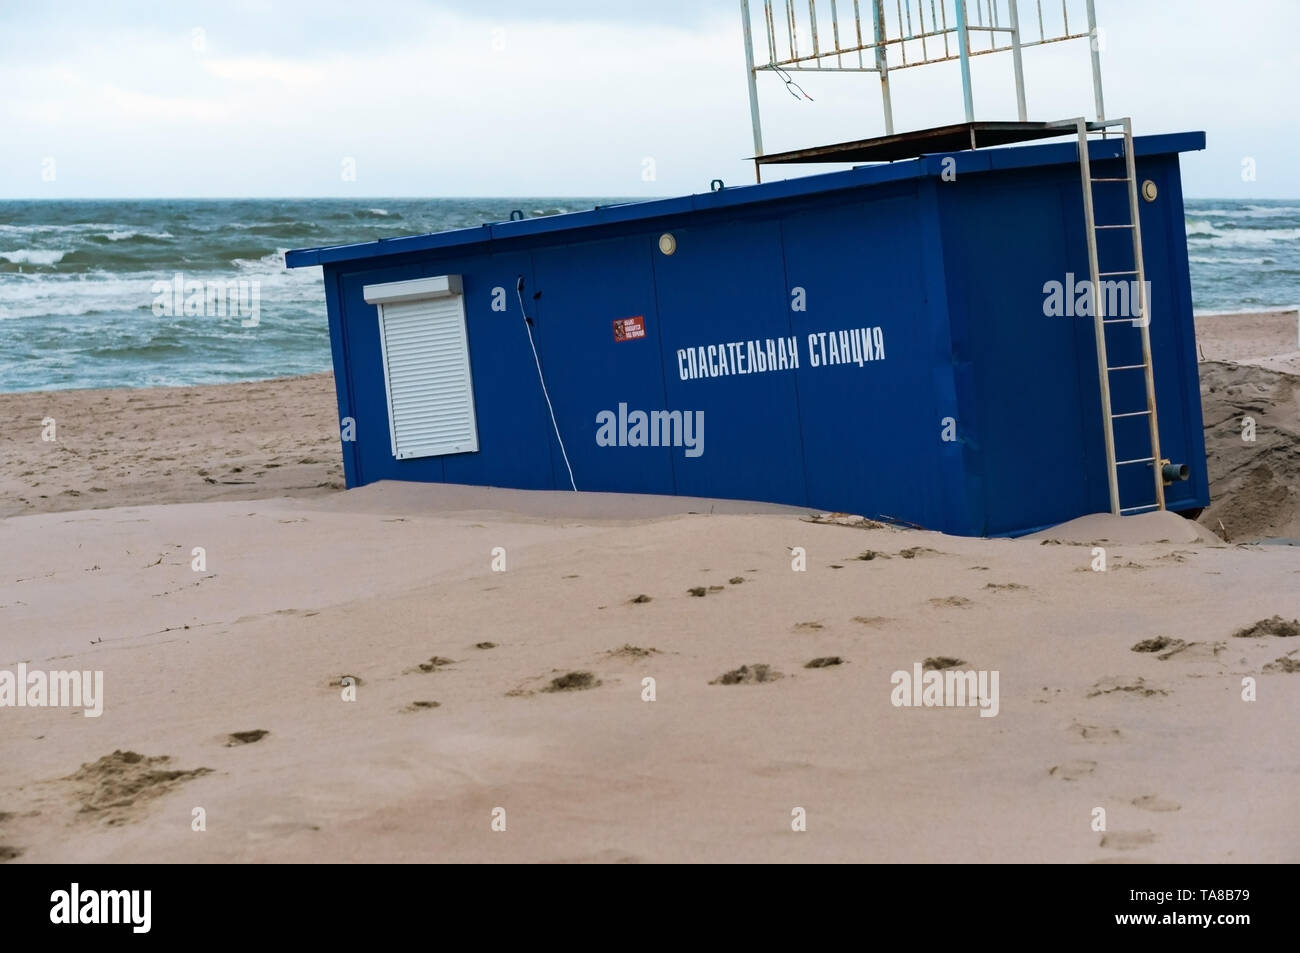 sea beach after a storm, rescue station in the sand, Yantarny village, Kaliningrad region, Russia, January 20, 2019 Stock Photo